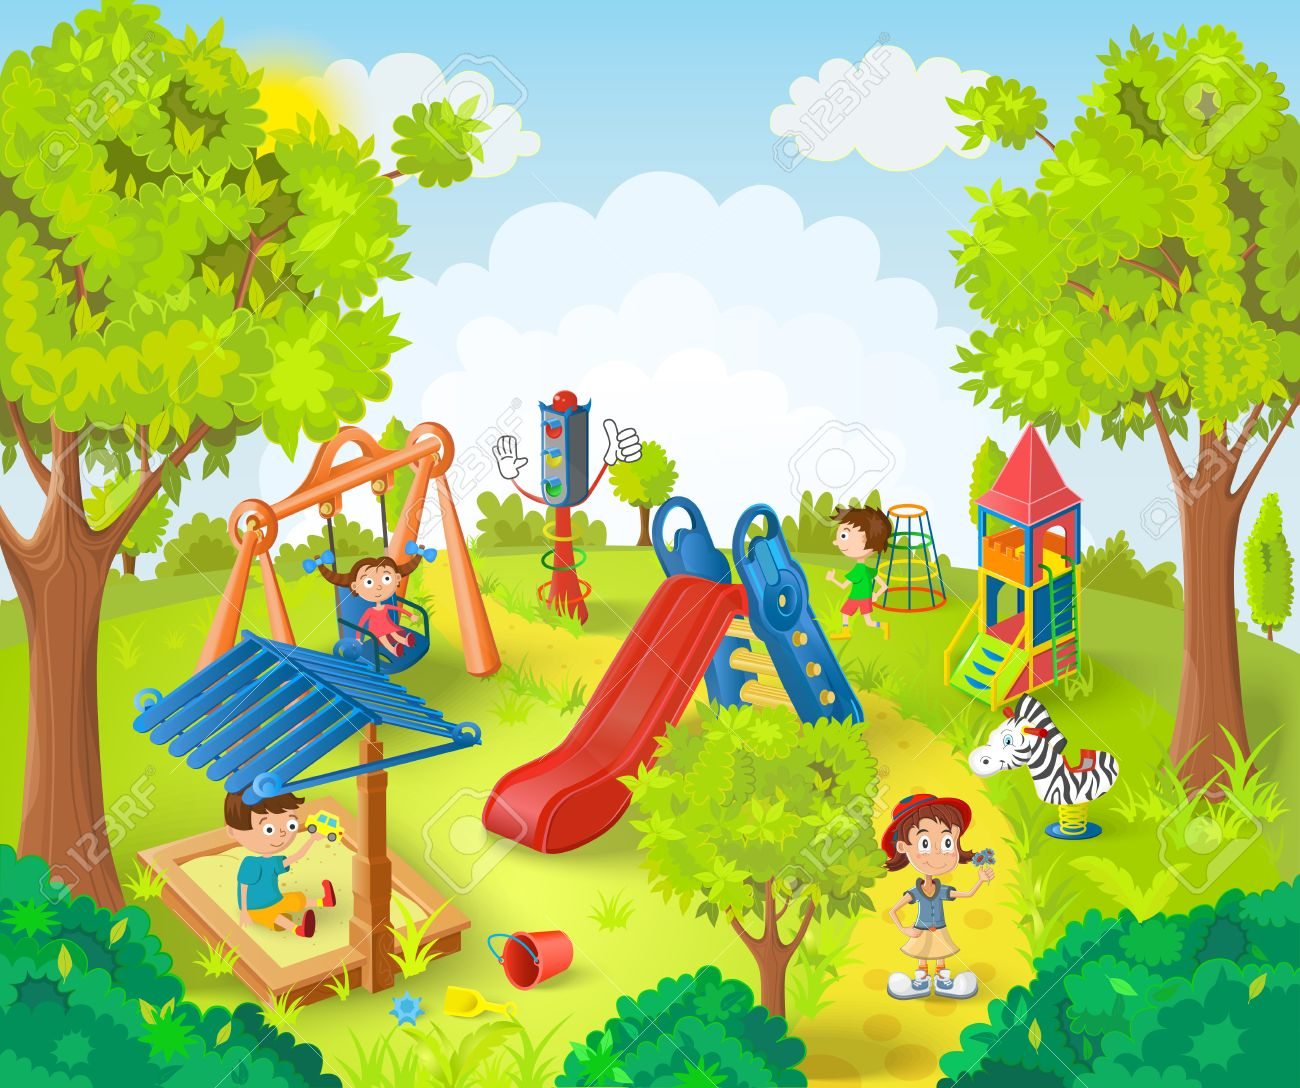 Children Playing In The Park Vector Illu-Children playing in the park vector illustration Stock Vector - 40006940-2